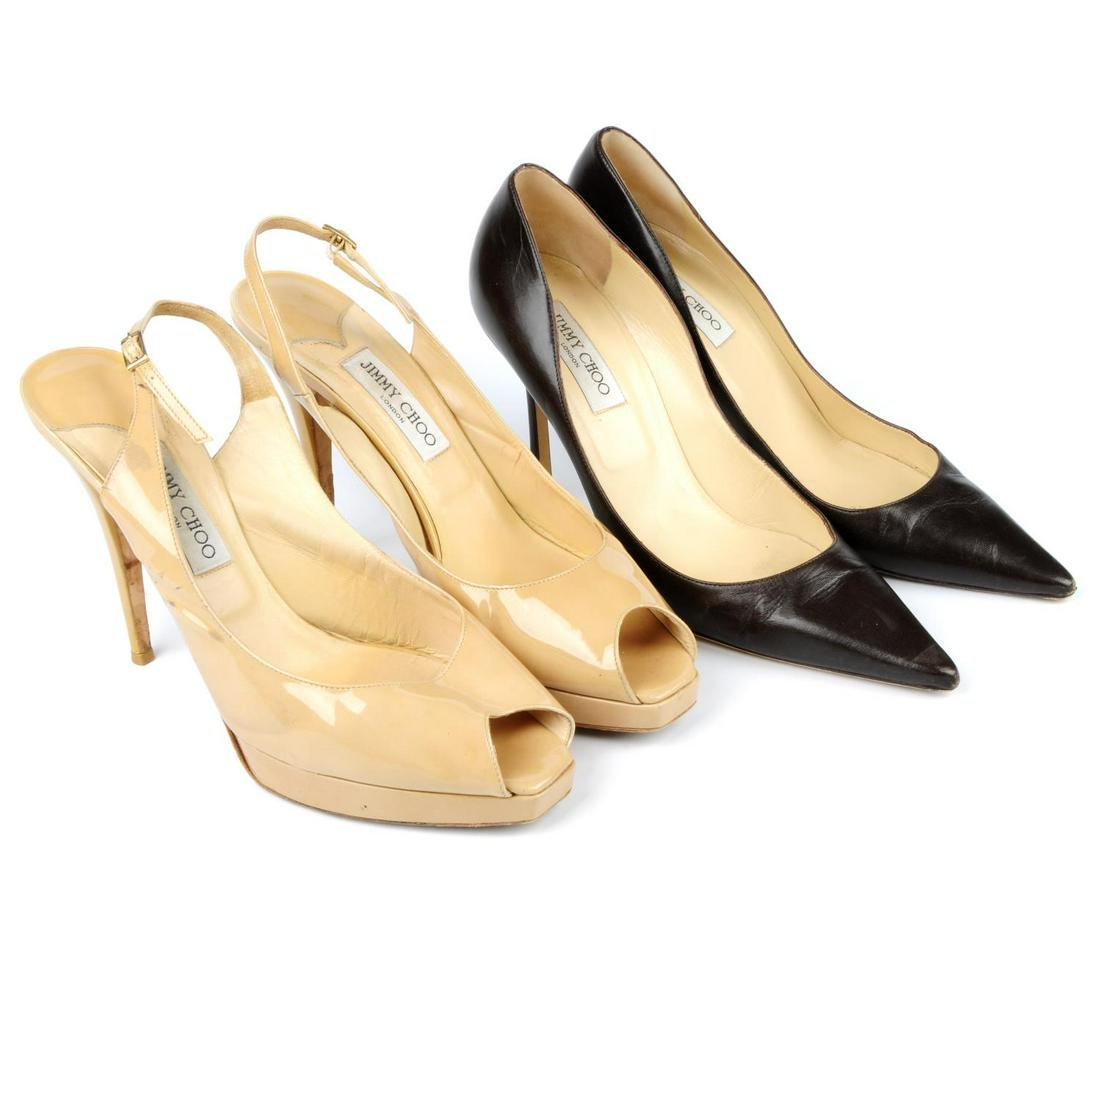 JIMMY CHOO - four pairs of ladies shoes. To include two